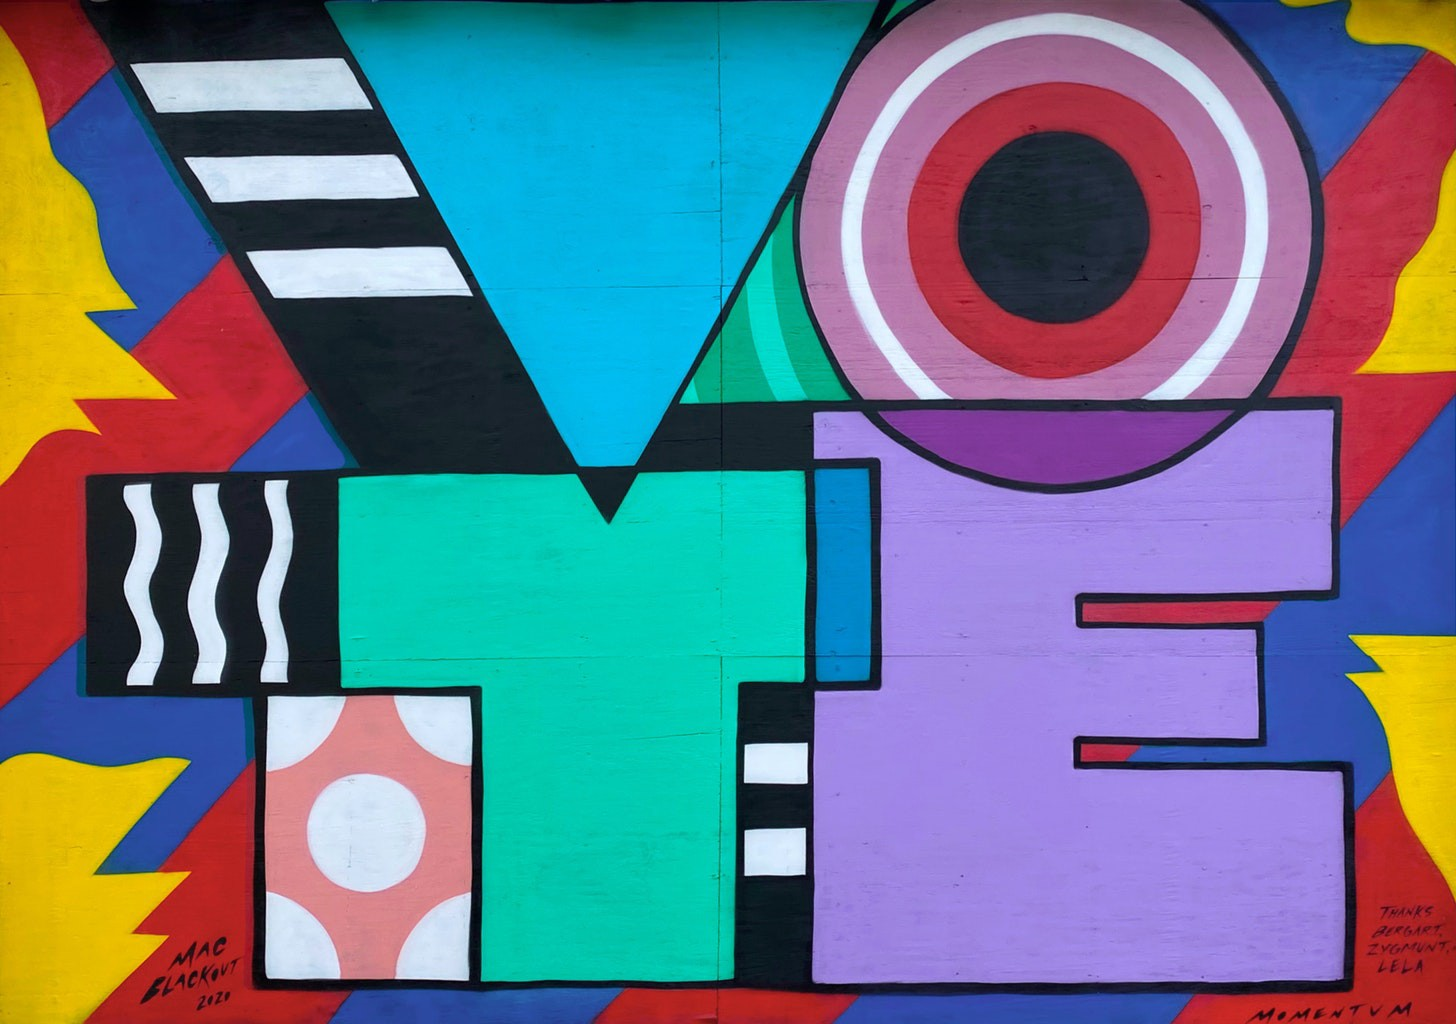 Bright colored geometric mural of the word VOTE with VO at the top and TE at the bottom